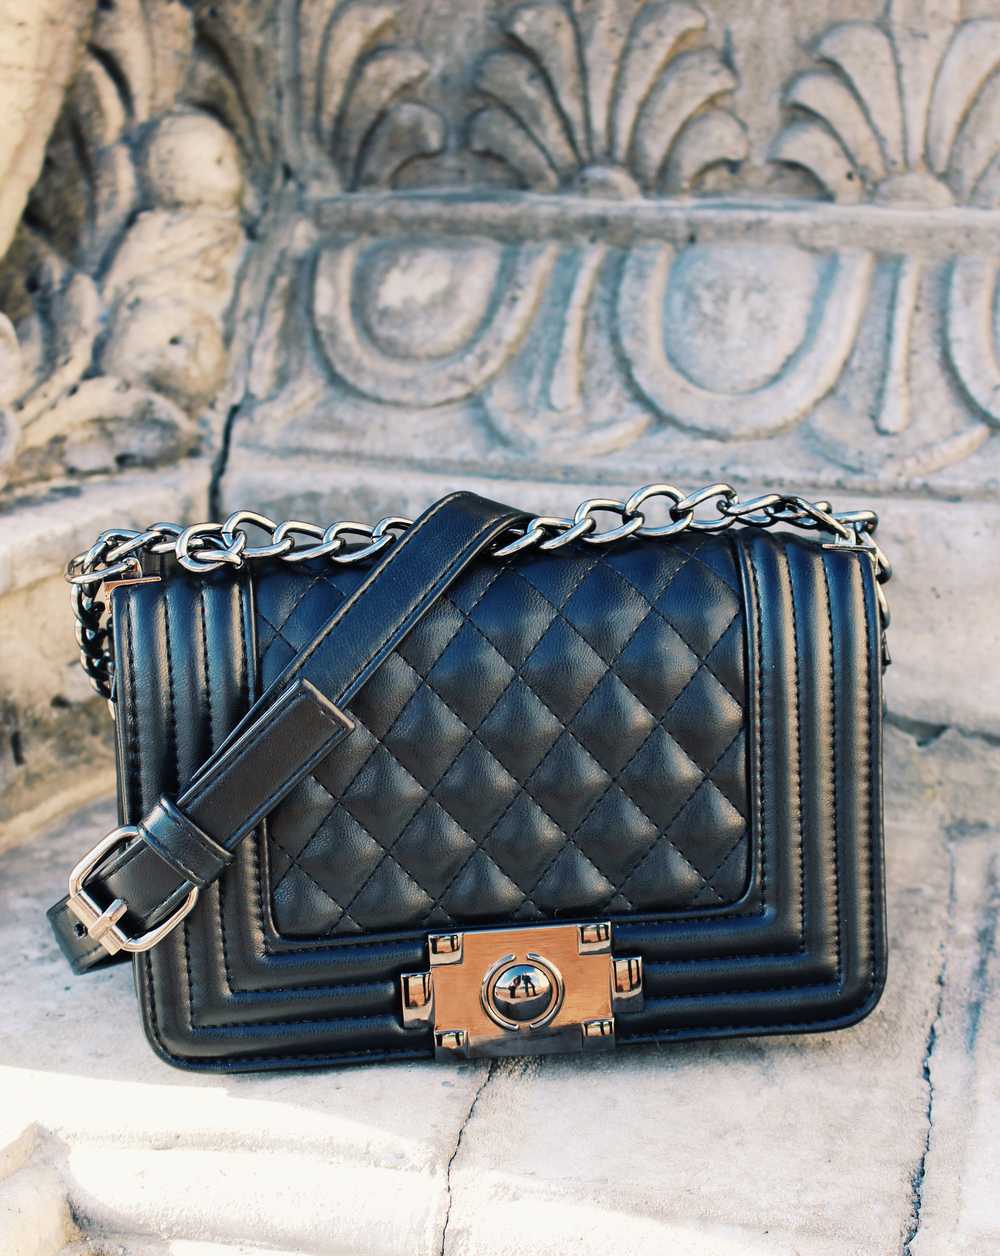 This Papaya quilted faux lather bag is a dead ringer for the Chanel boy bag.